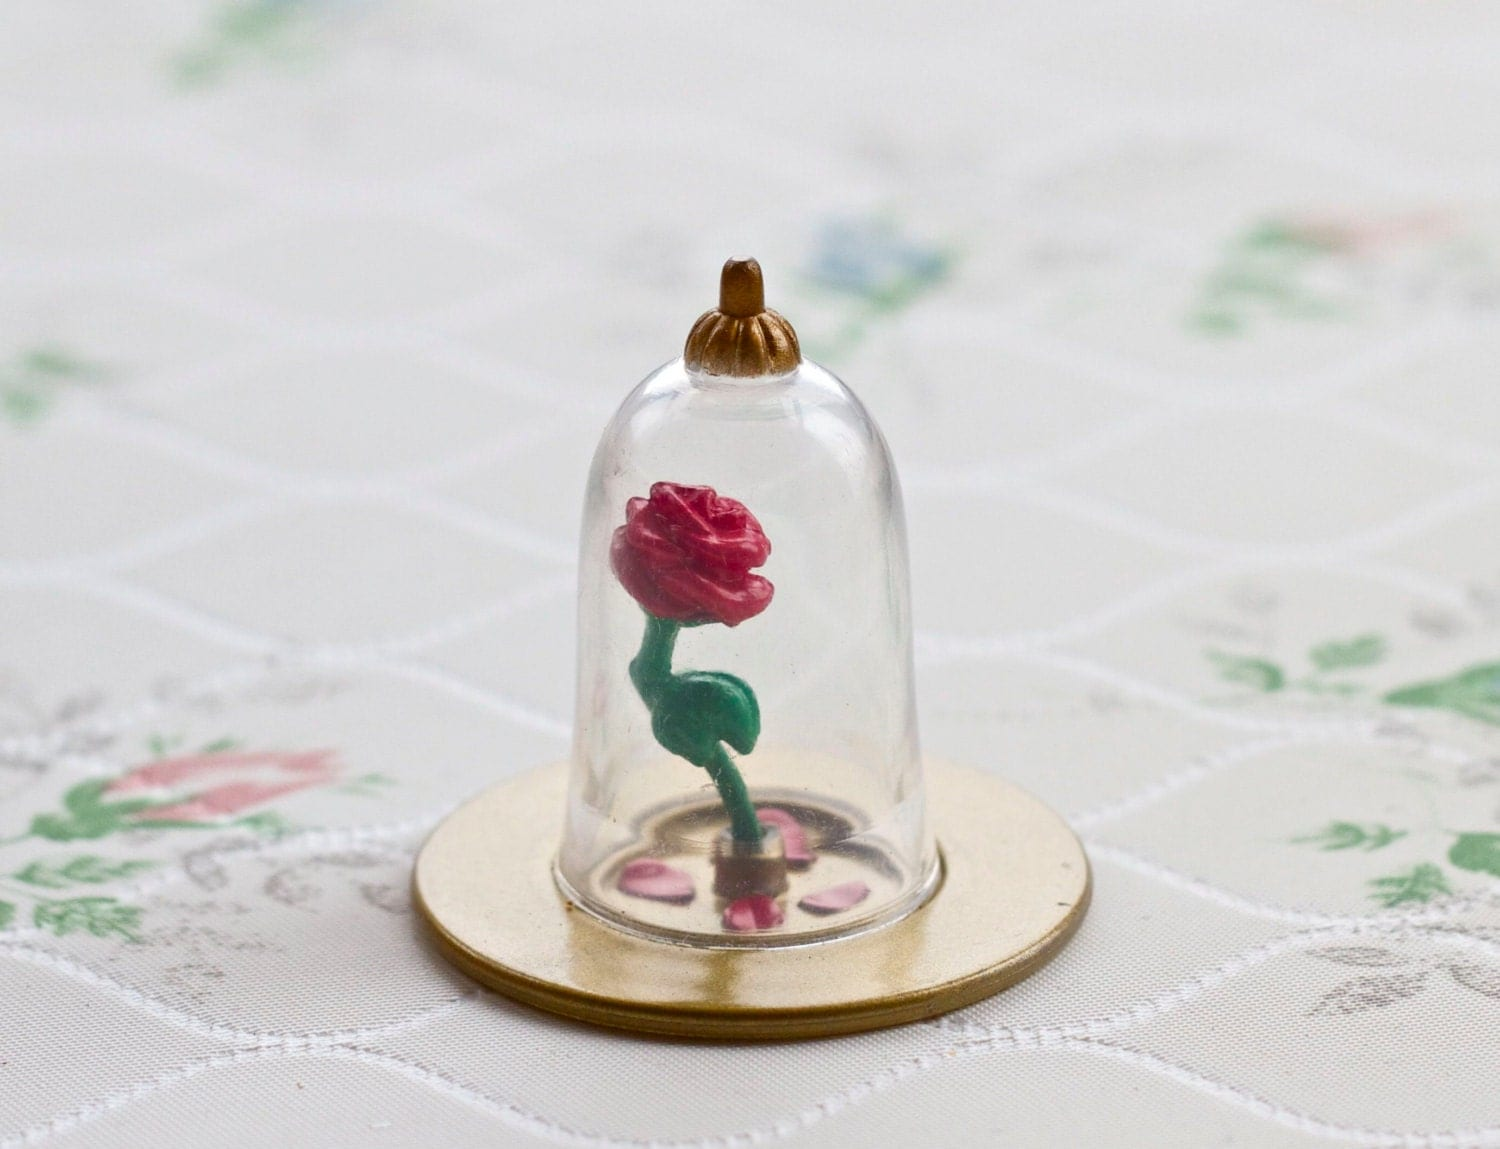 teeny weeny captive rose flower in glass dome beauty and. Black Bedroom Furniture Sets. Home Design Ideas